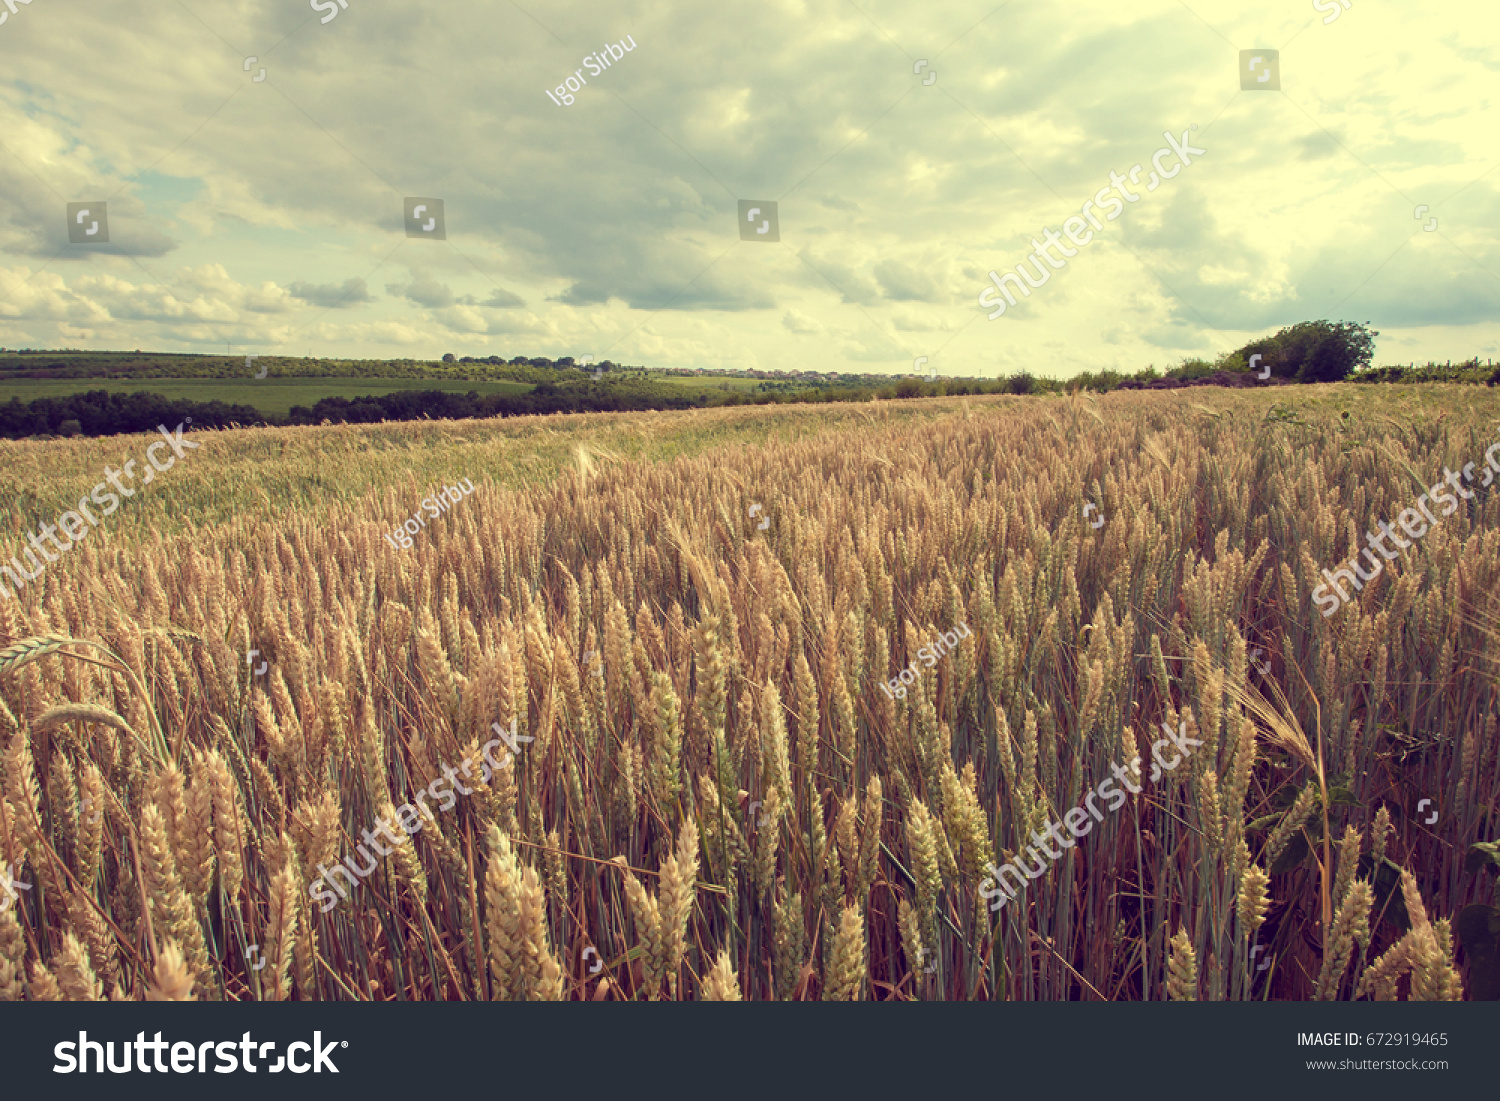 Summer landscape with wheat field. Gold wheat field. Toned. #672919465